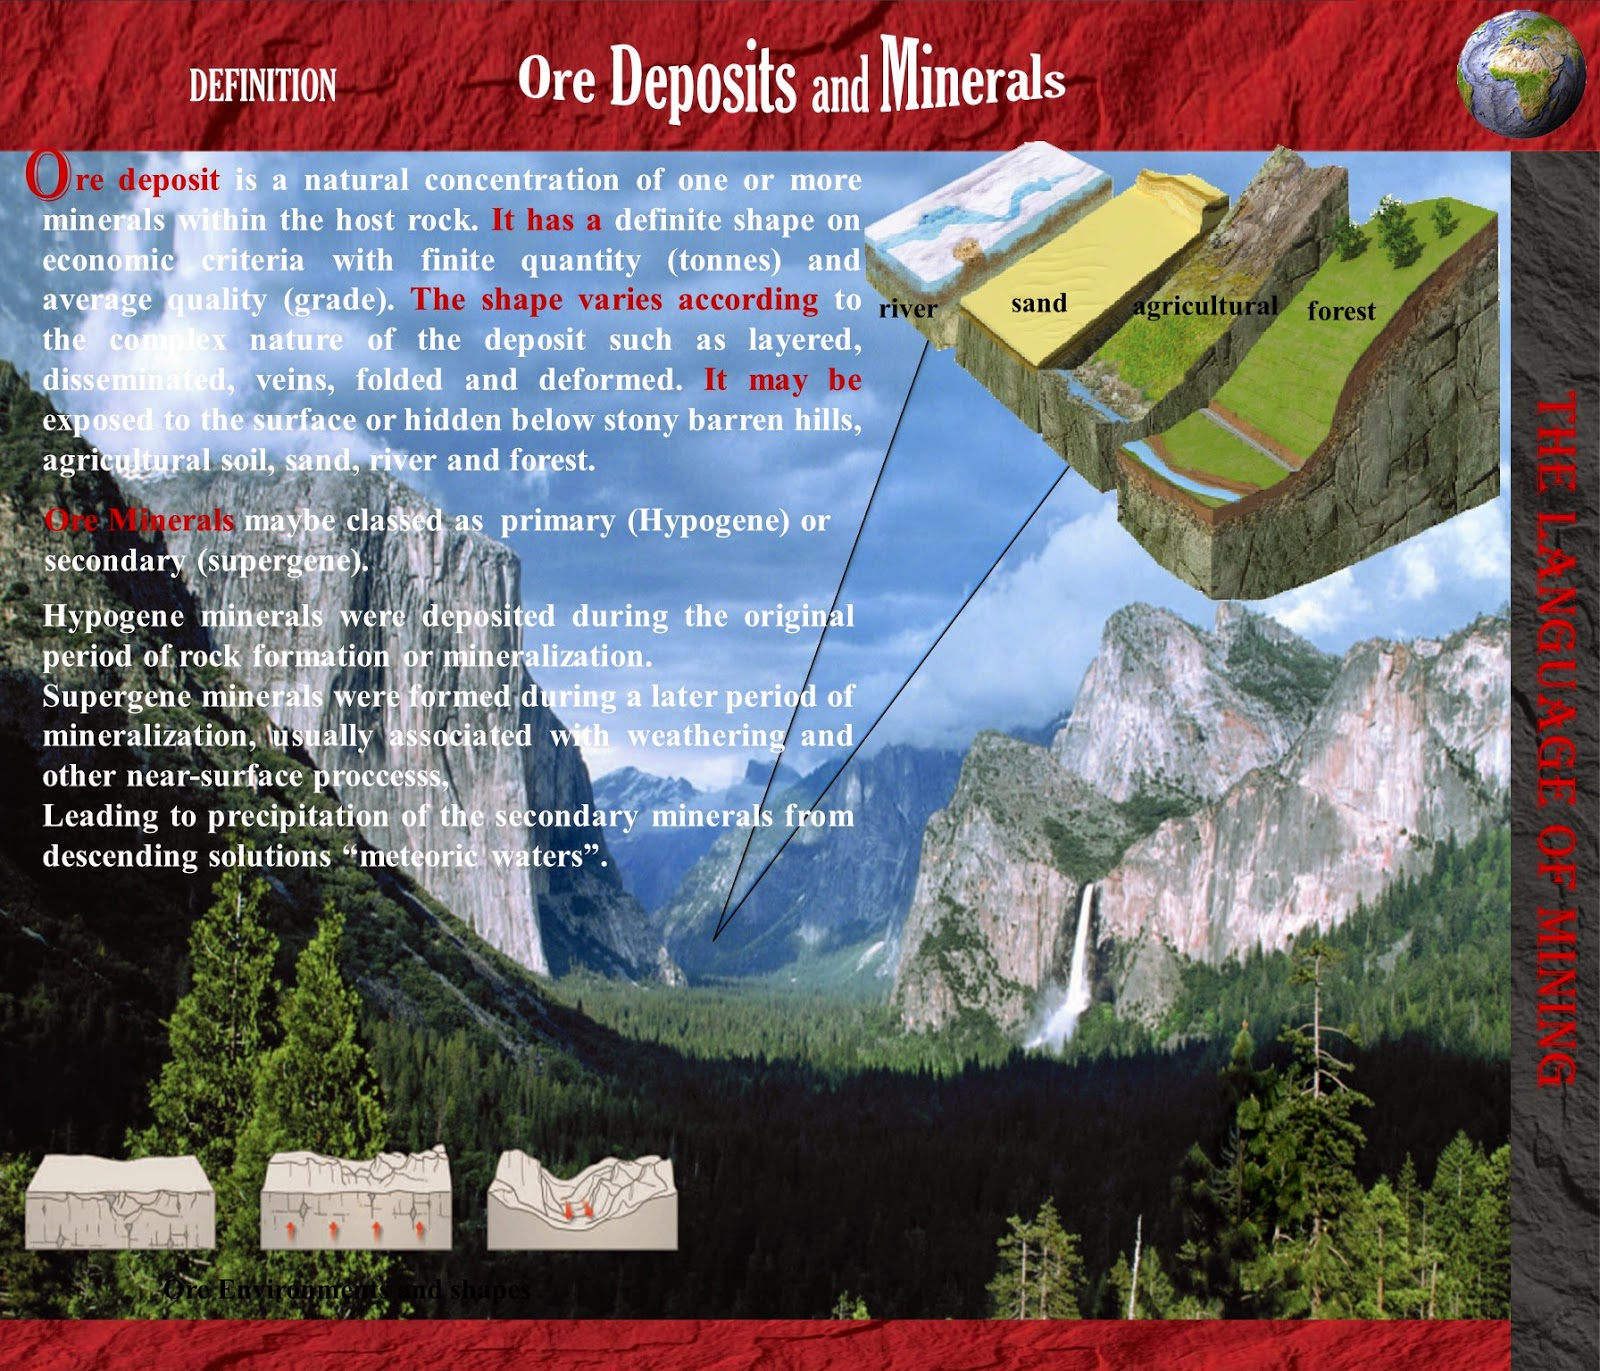 Ore Deposits and Minerals